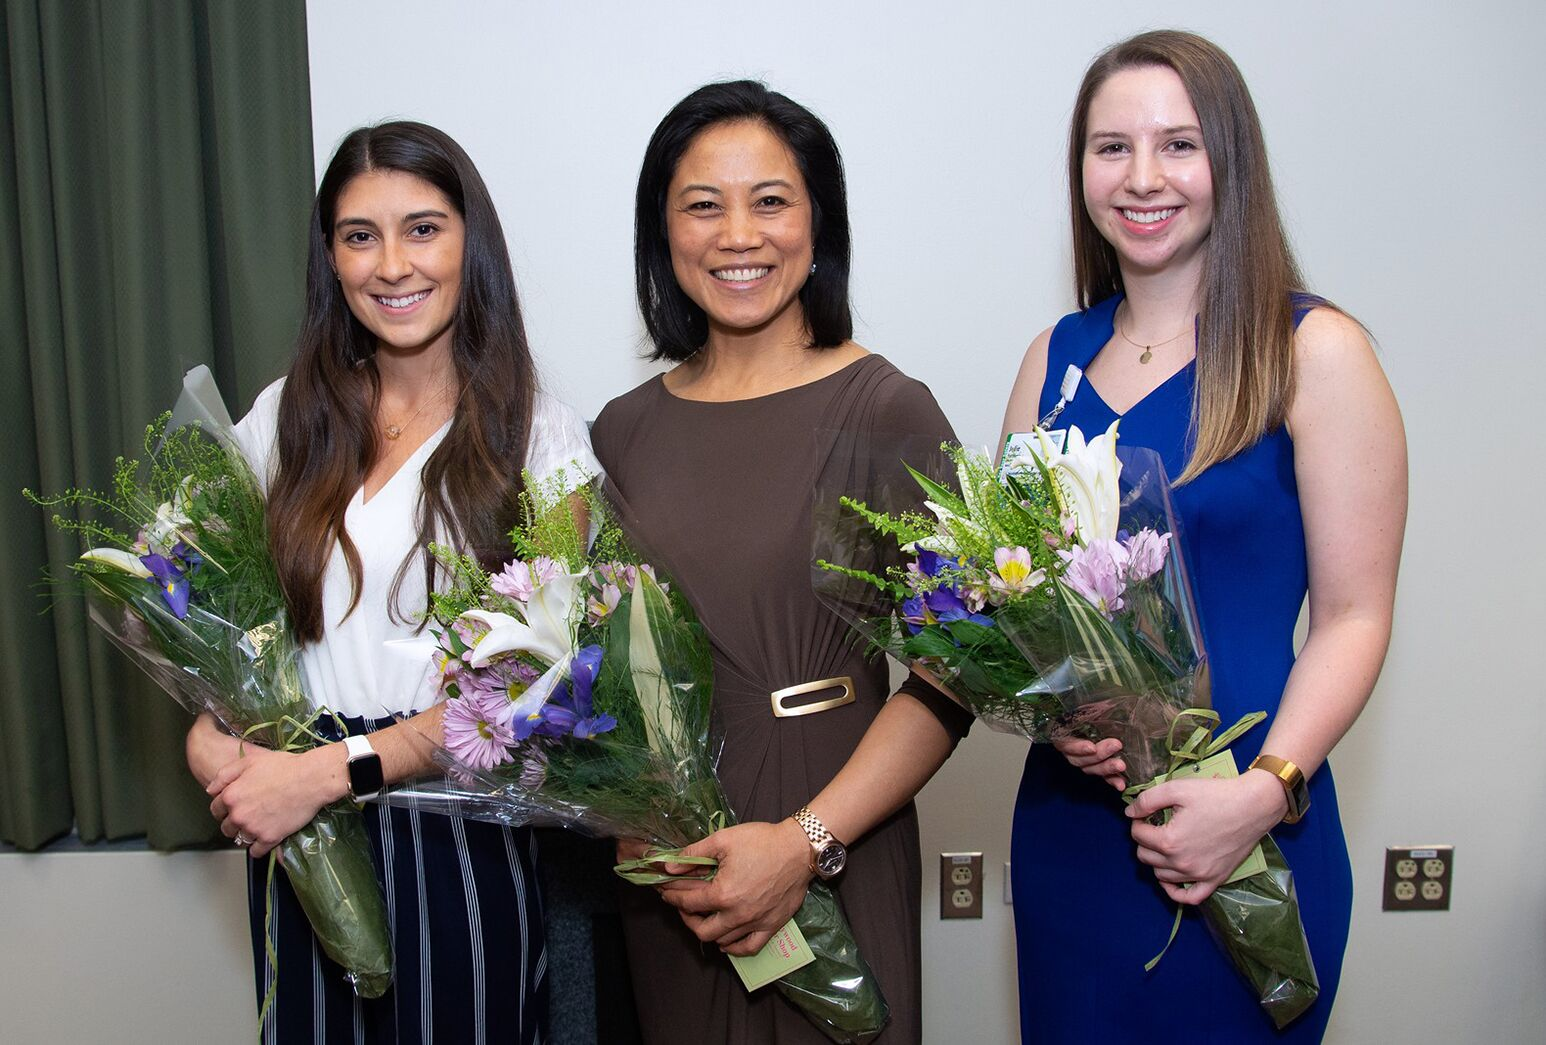 From left: Experienced Nurse Award to Carmela Bonito, RN, Cardiopulmonary Unit; Physician-Nominated Nurse Award to Haidee Mortel, RN, Intensive Care Unit; Up-and-Coming Nurse Award to Julie Rothberg, RN, Cardiopulmonary Unit.